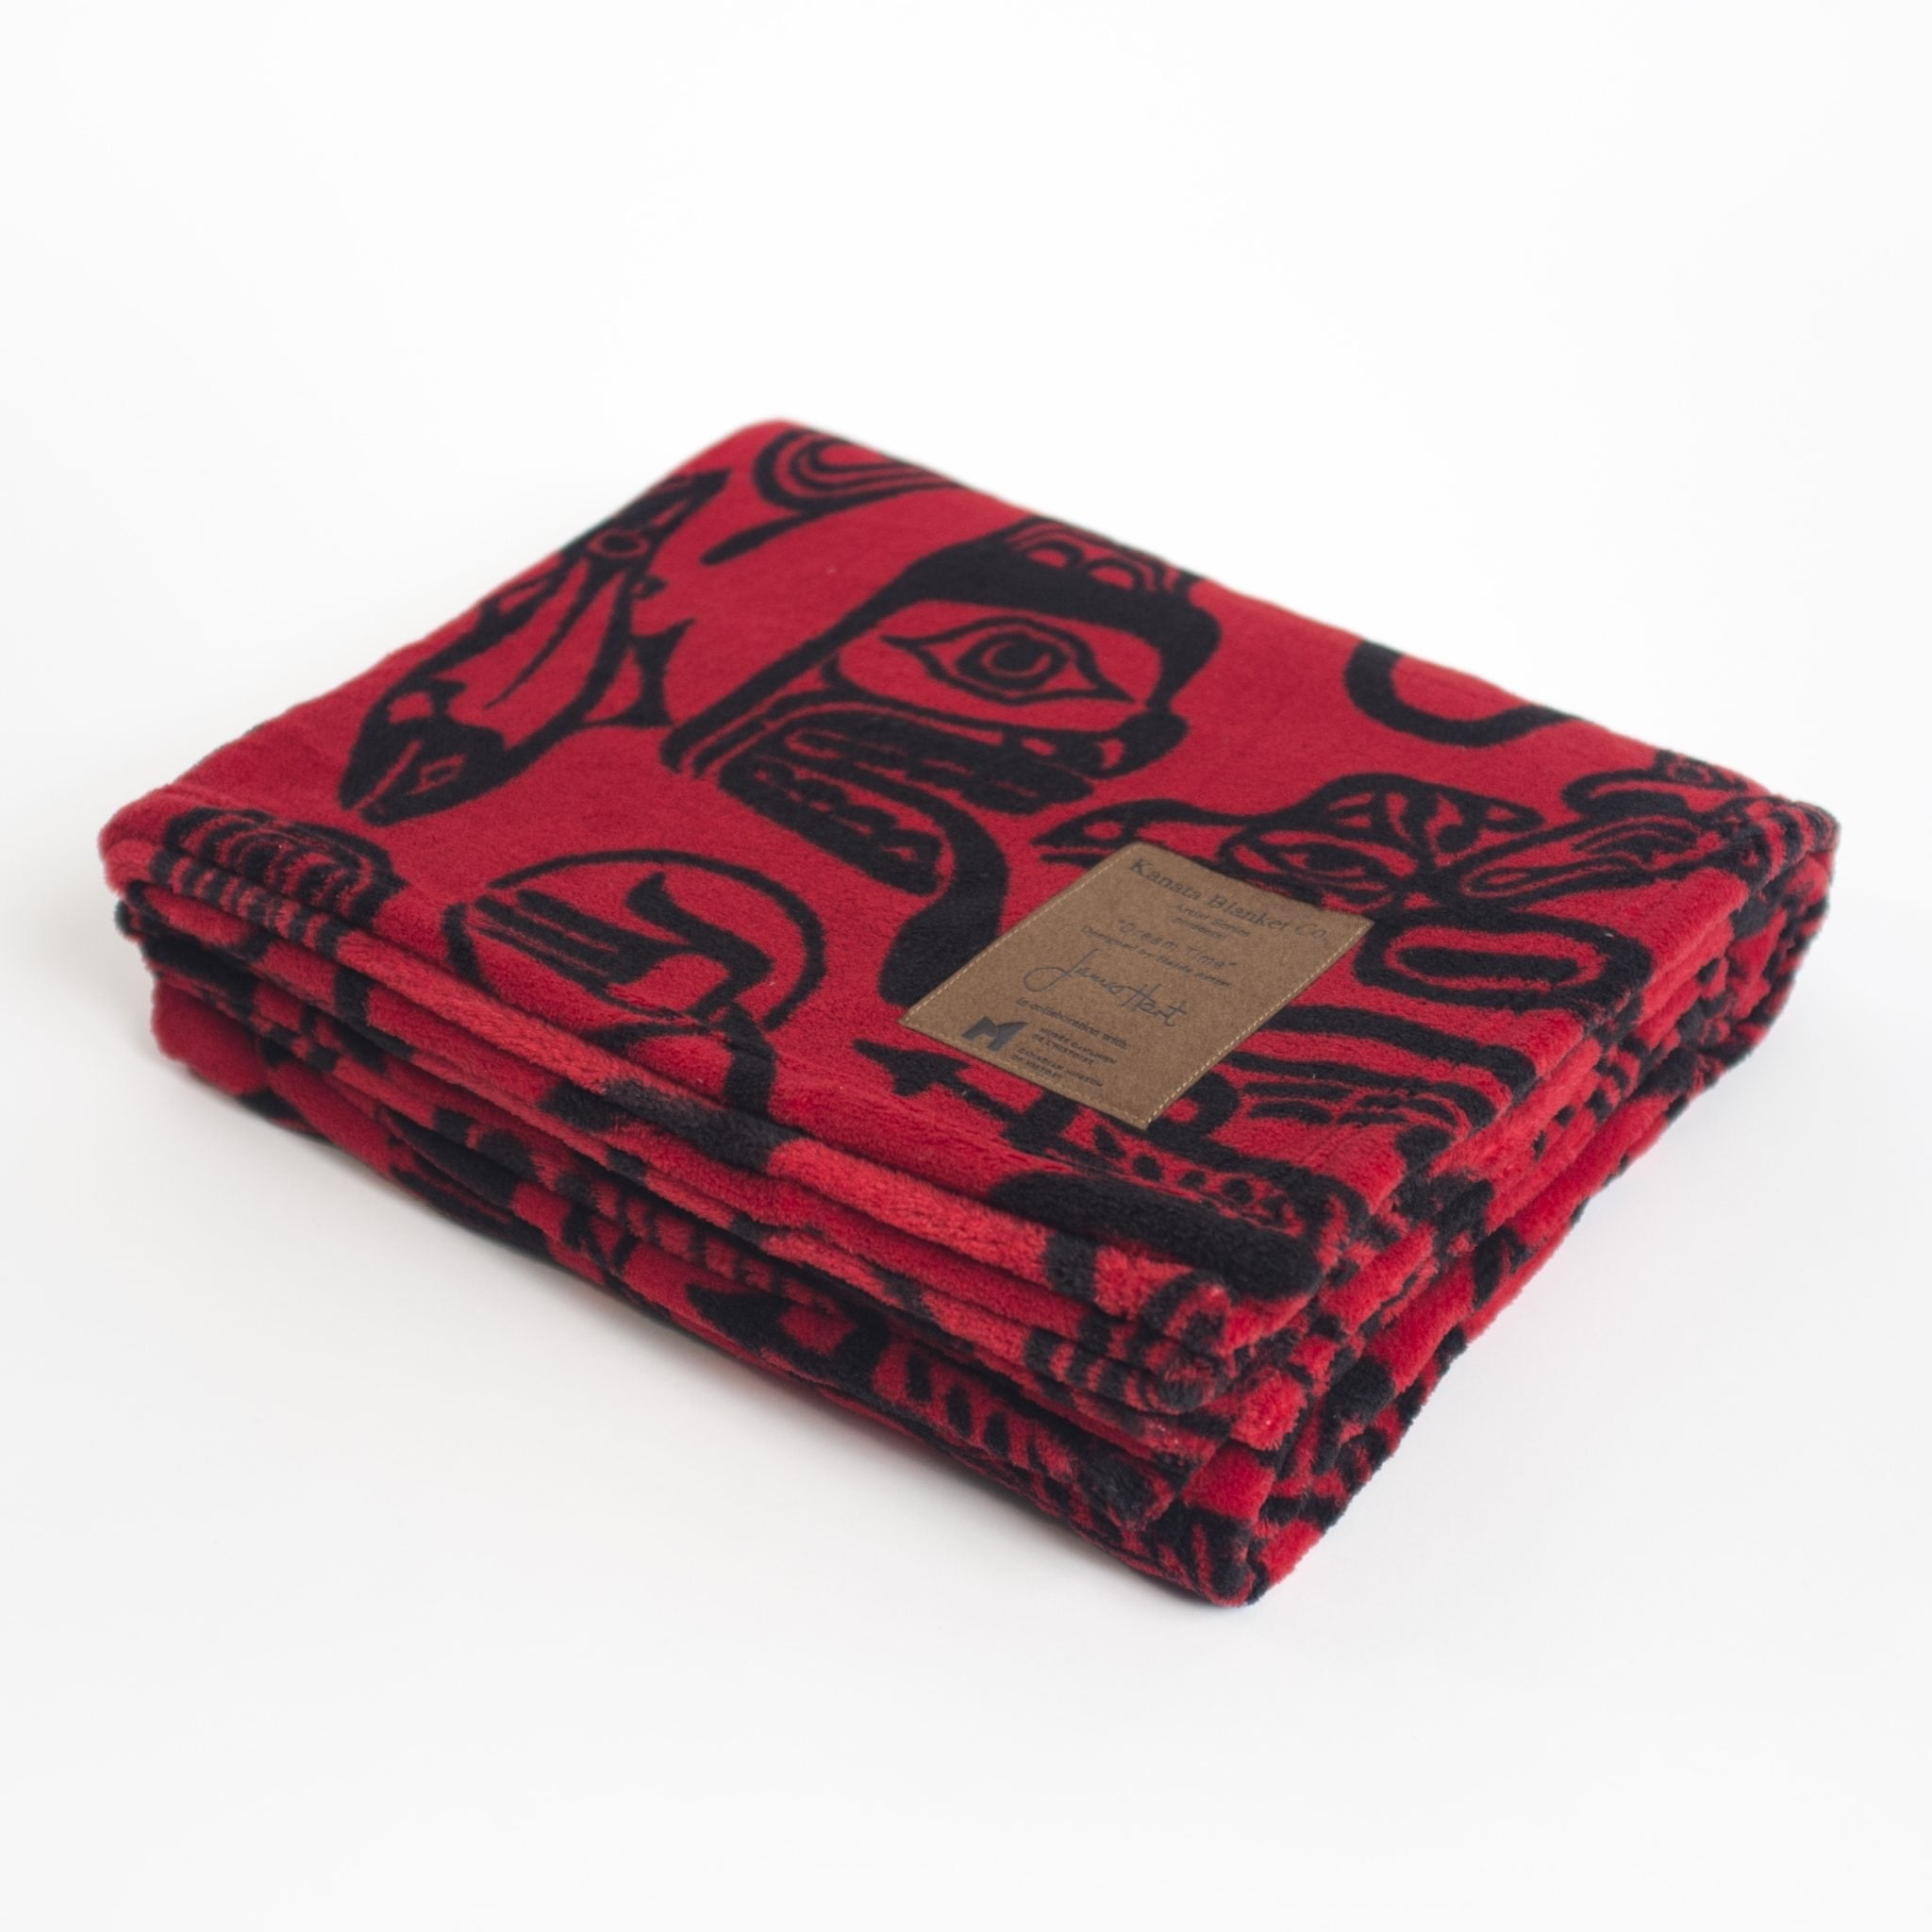 "Haida ""Dreamtime"" Velura Throw"